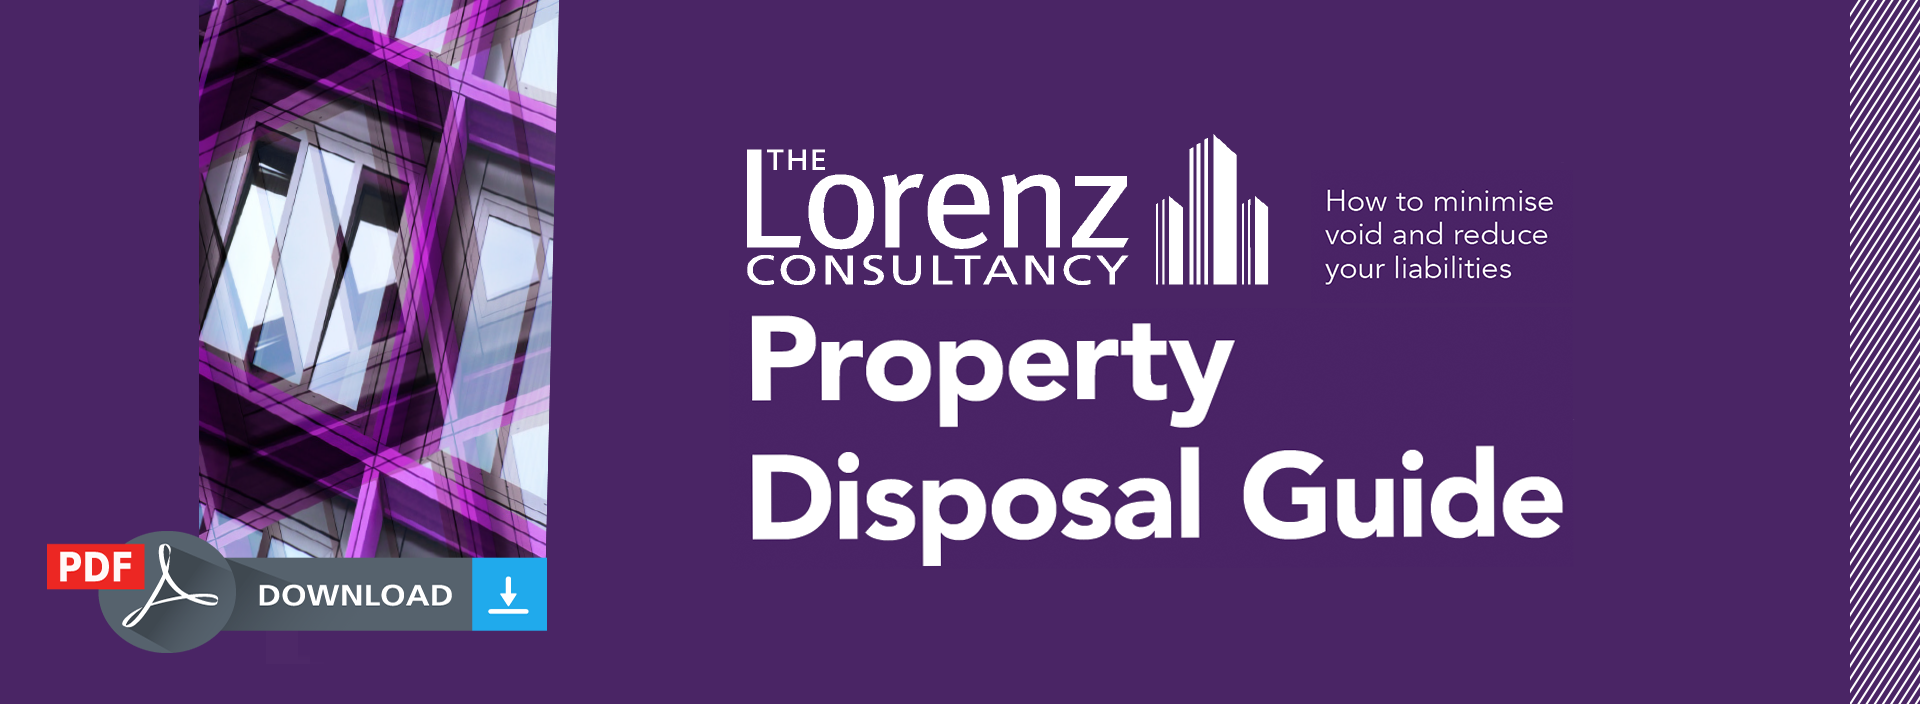 Property Disposal Guide - Landing Page Header.png